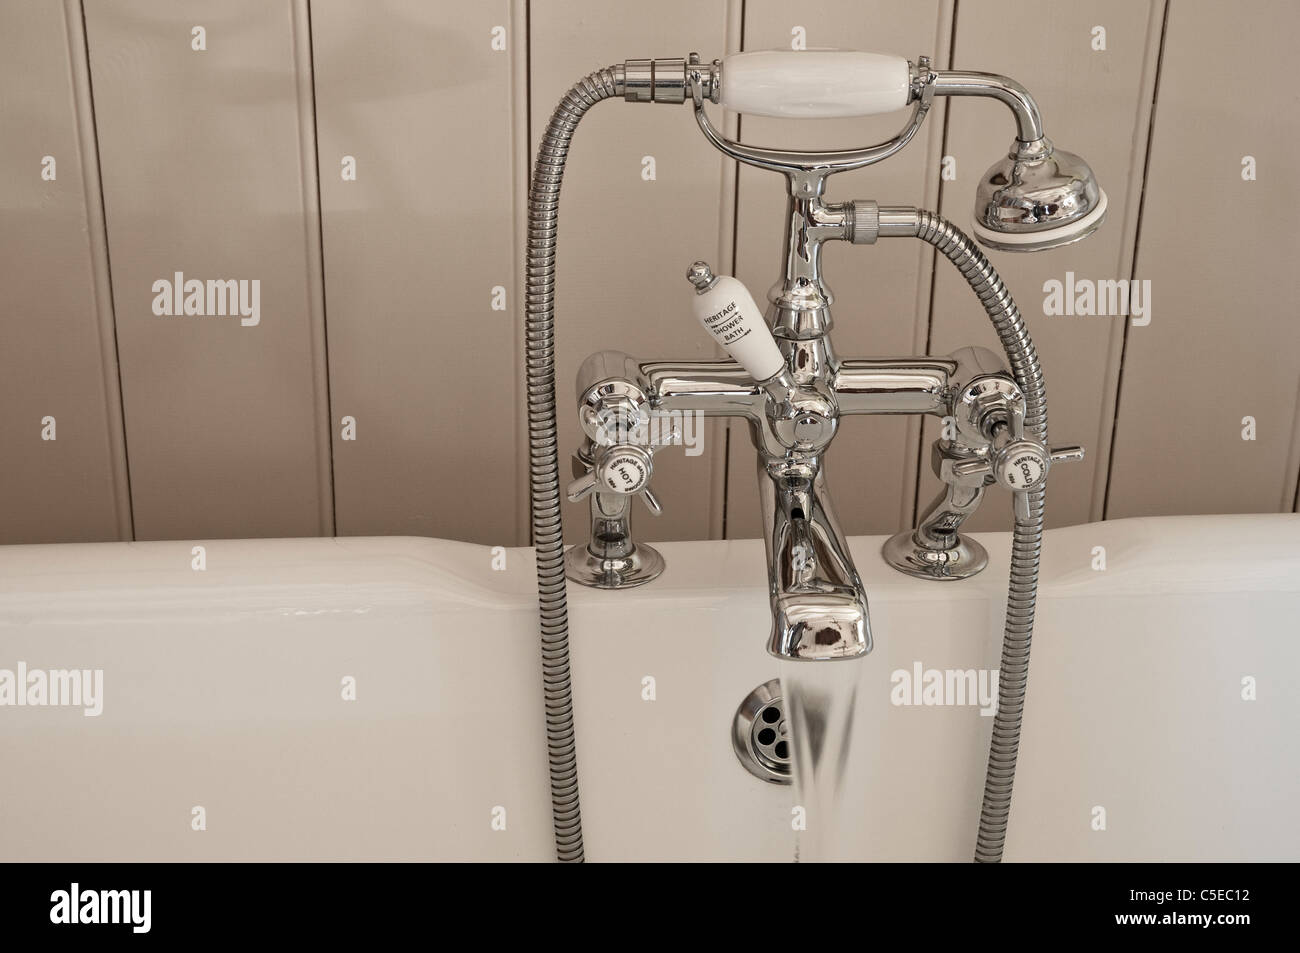 Running a bath - traditional bath taps and showerhead - centred on a ...